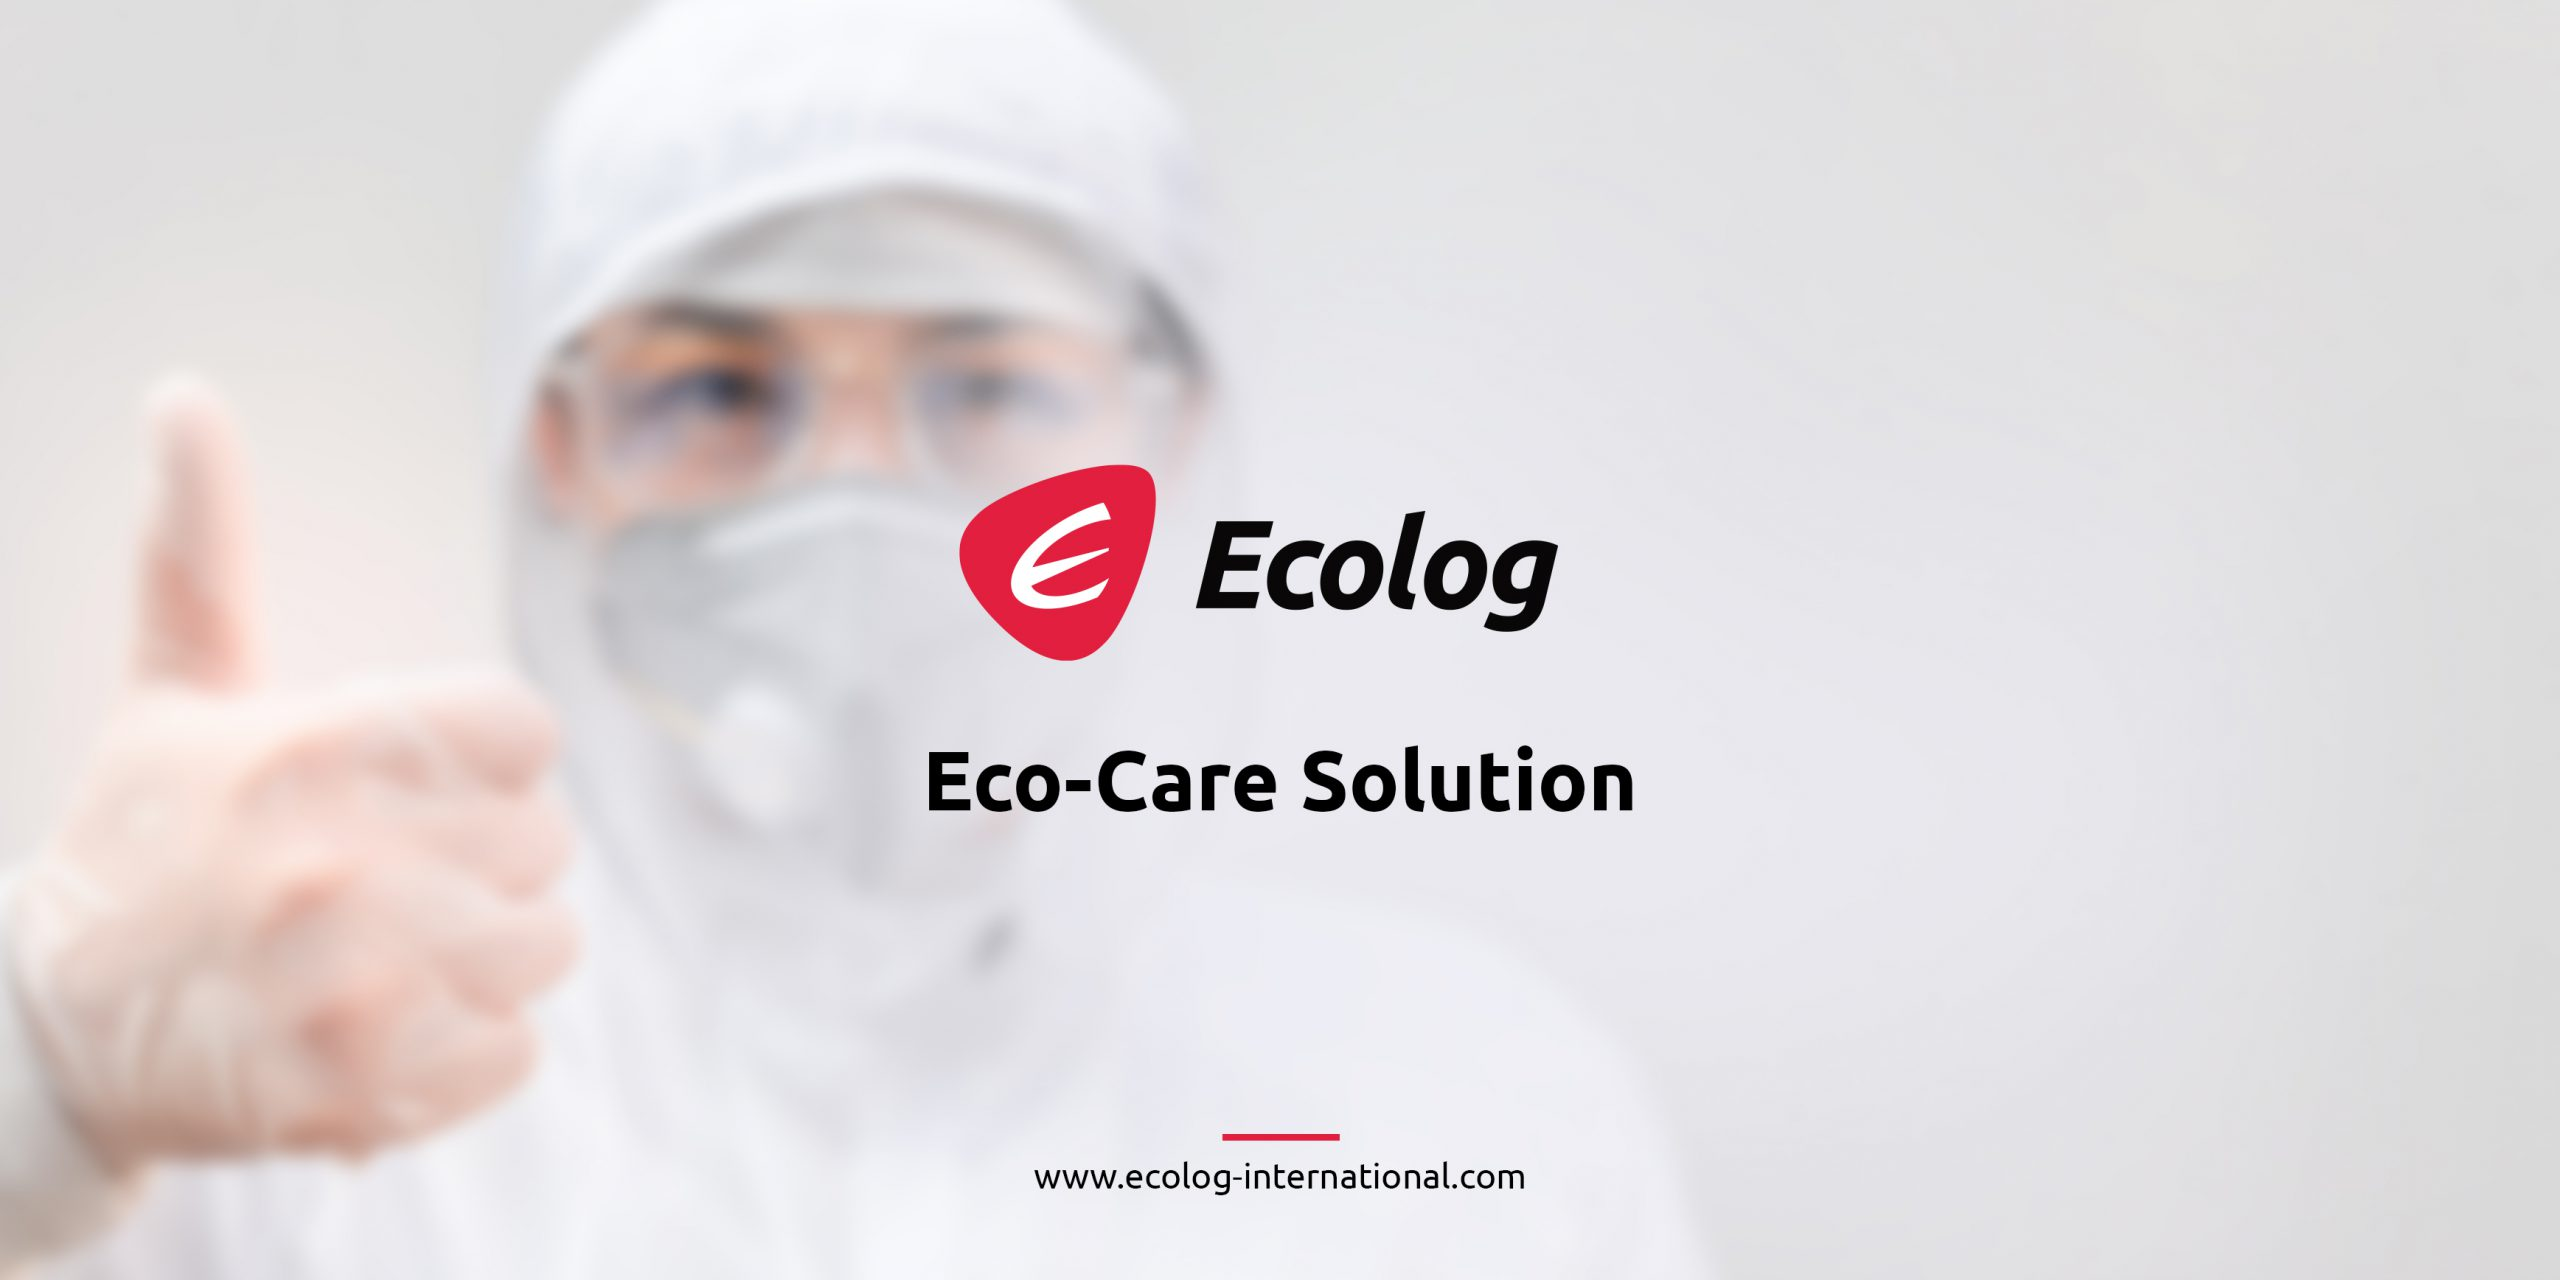 Ecolog announces the launch of its Eco-Care Solution